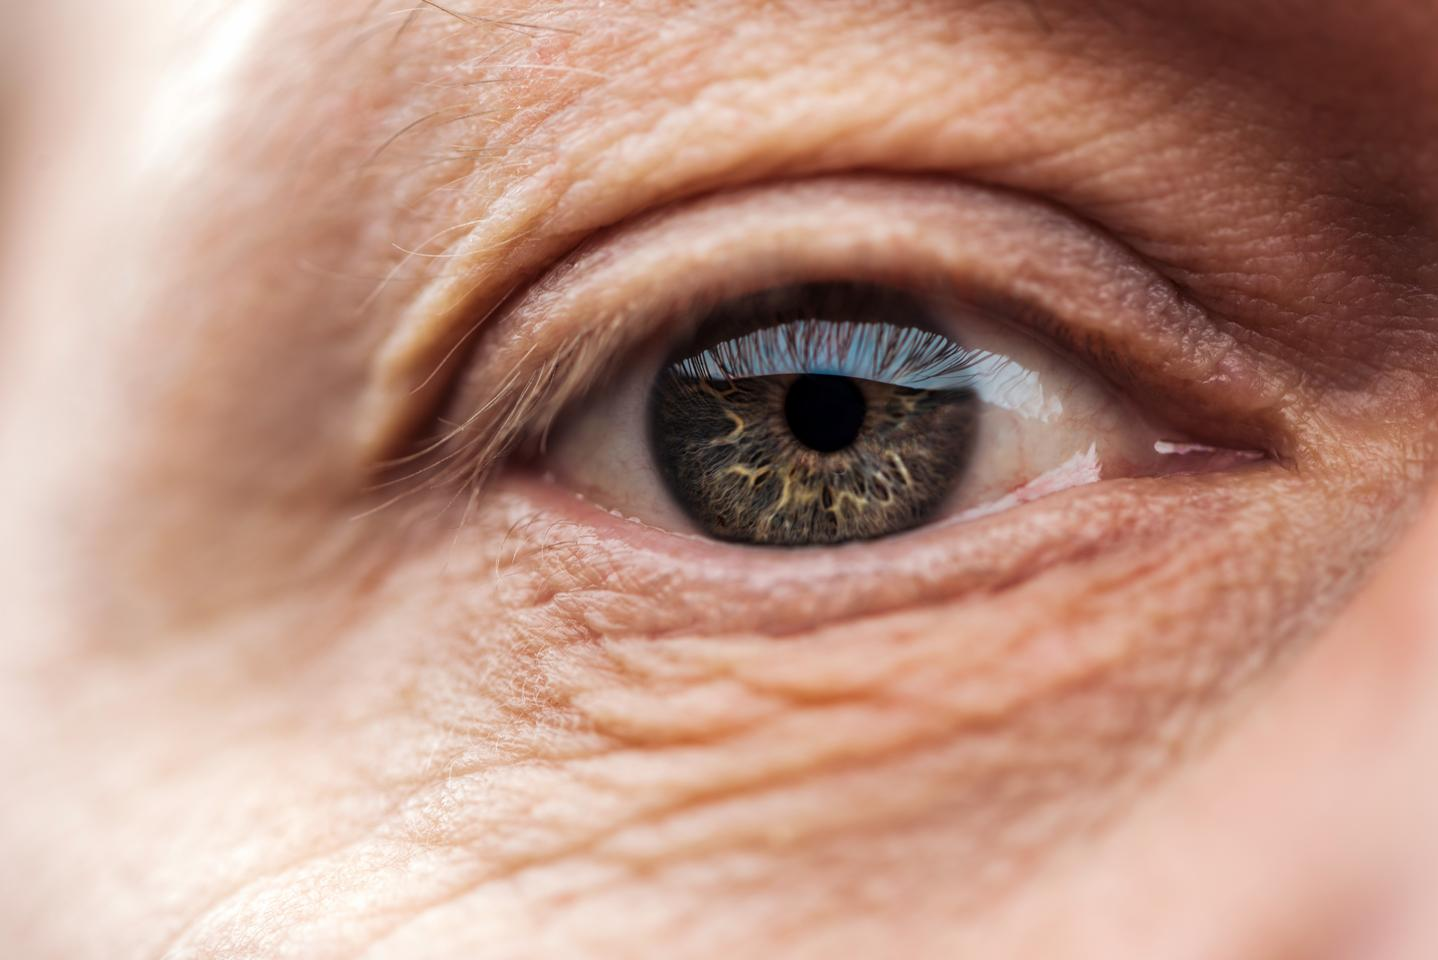 People with age-related macular degeneration have higher bloodstream levels of a protein known as FHR-4